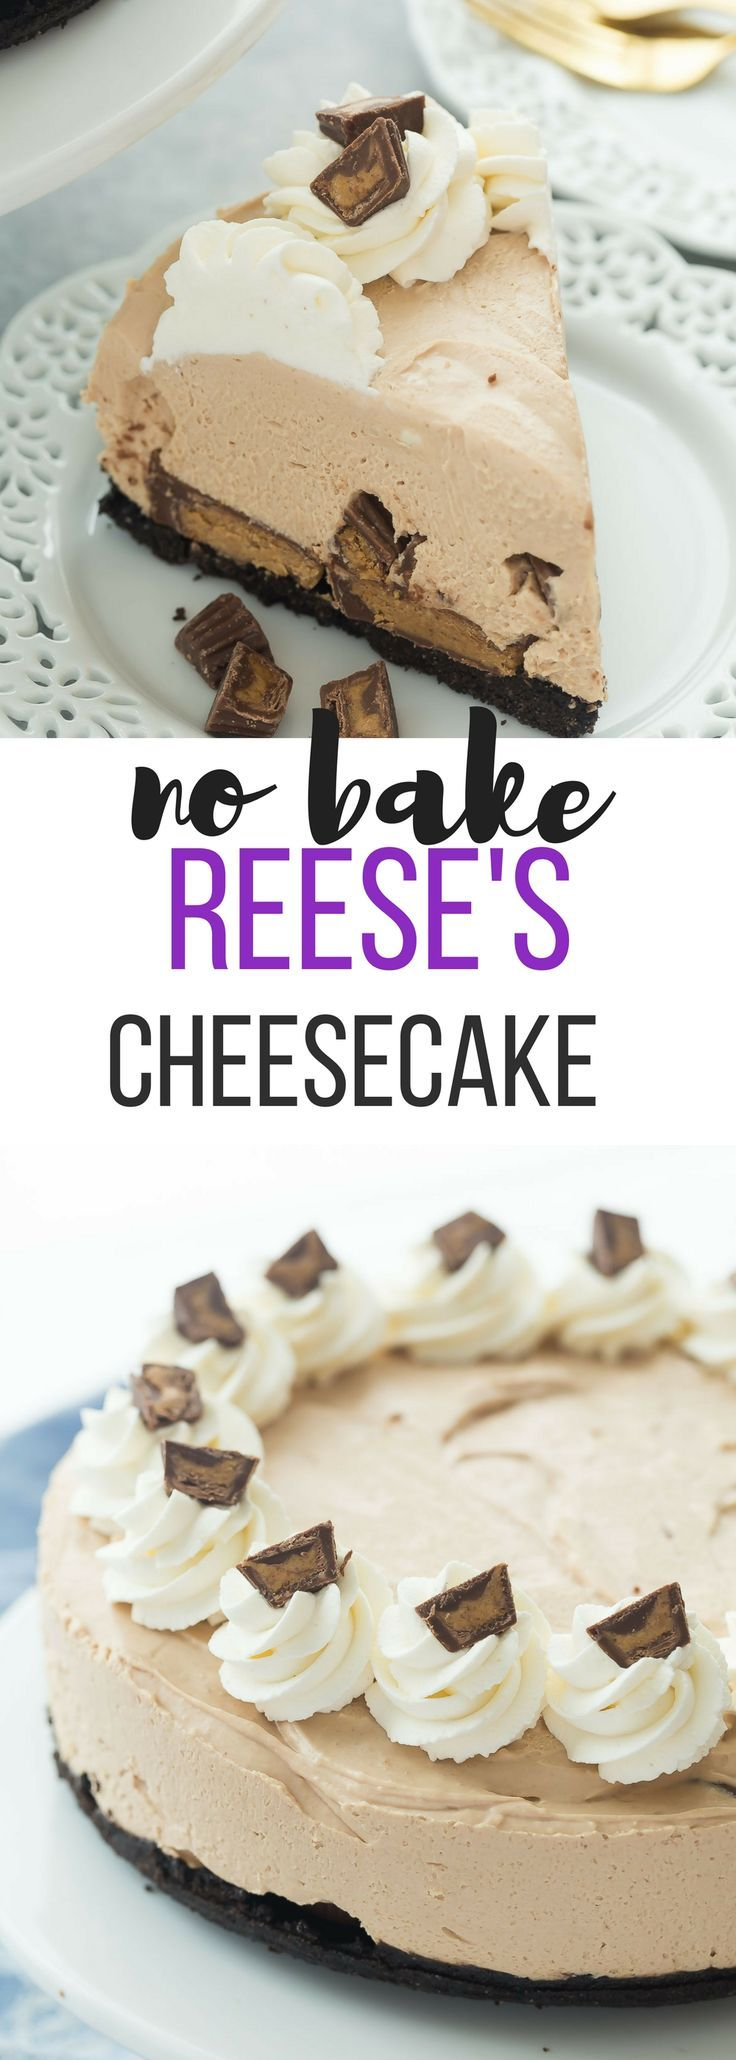 This No Bake Reese's Peanut Butter Cup Cheesecake is perfectly smooth and creamy, and so easy! It is the ultimate dessert for peanut butter and chocolate lovers! Includes how to recipe video   no bake cheesecake   no bake dessert   summer dessert   easy d